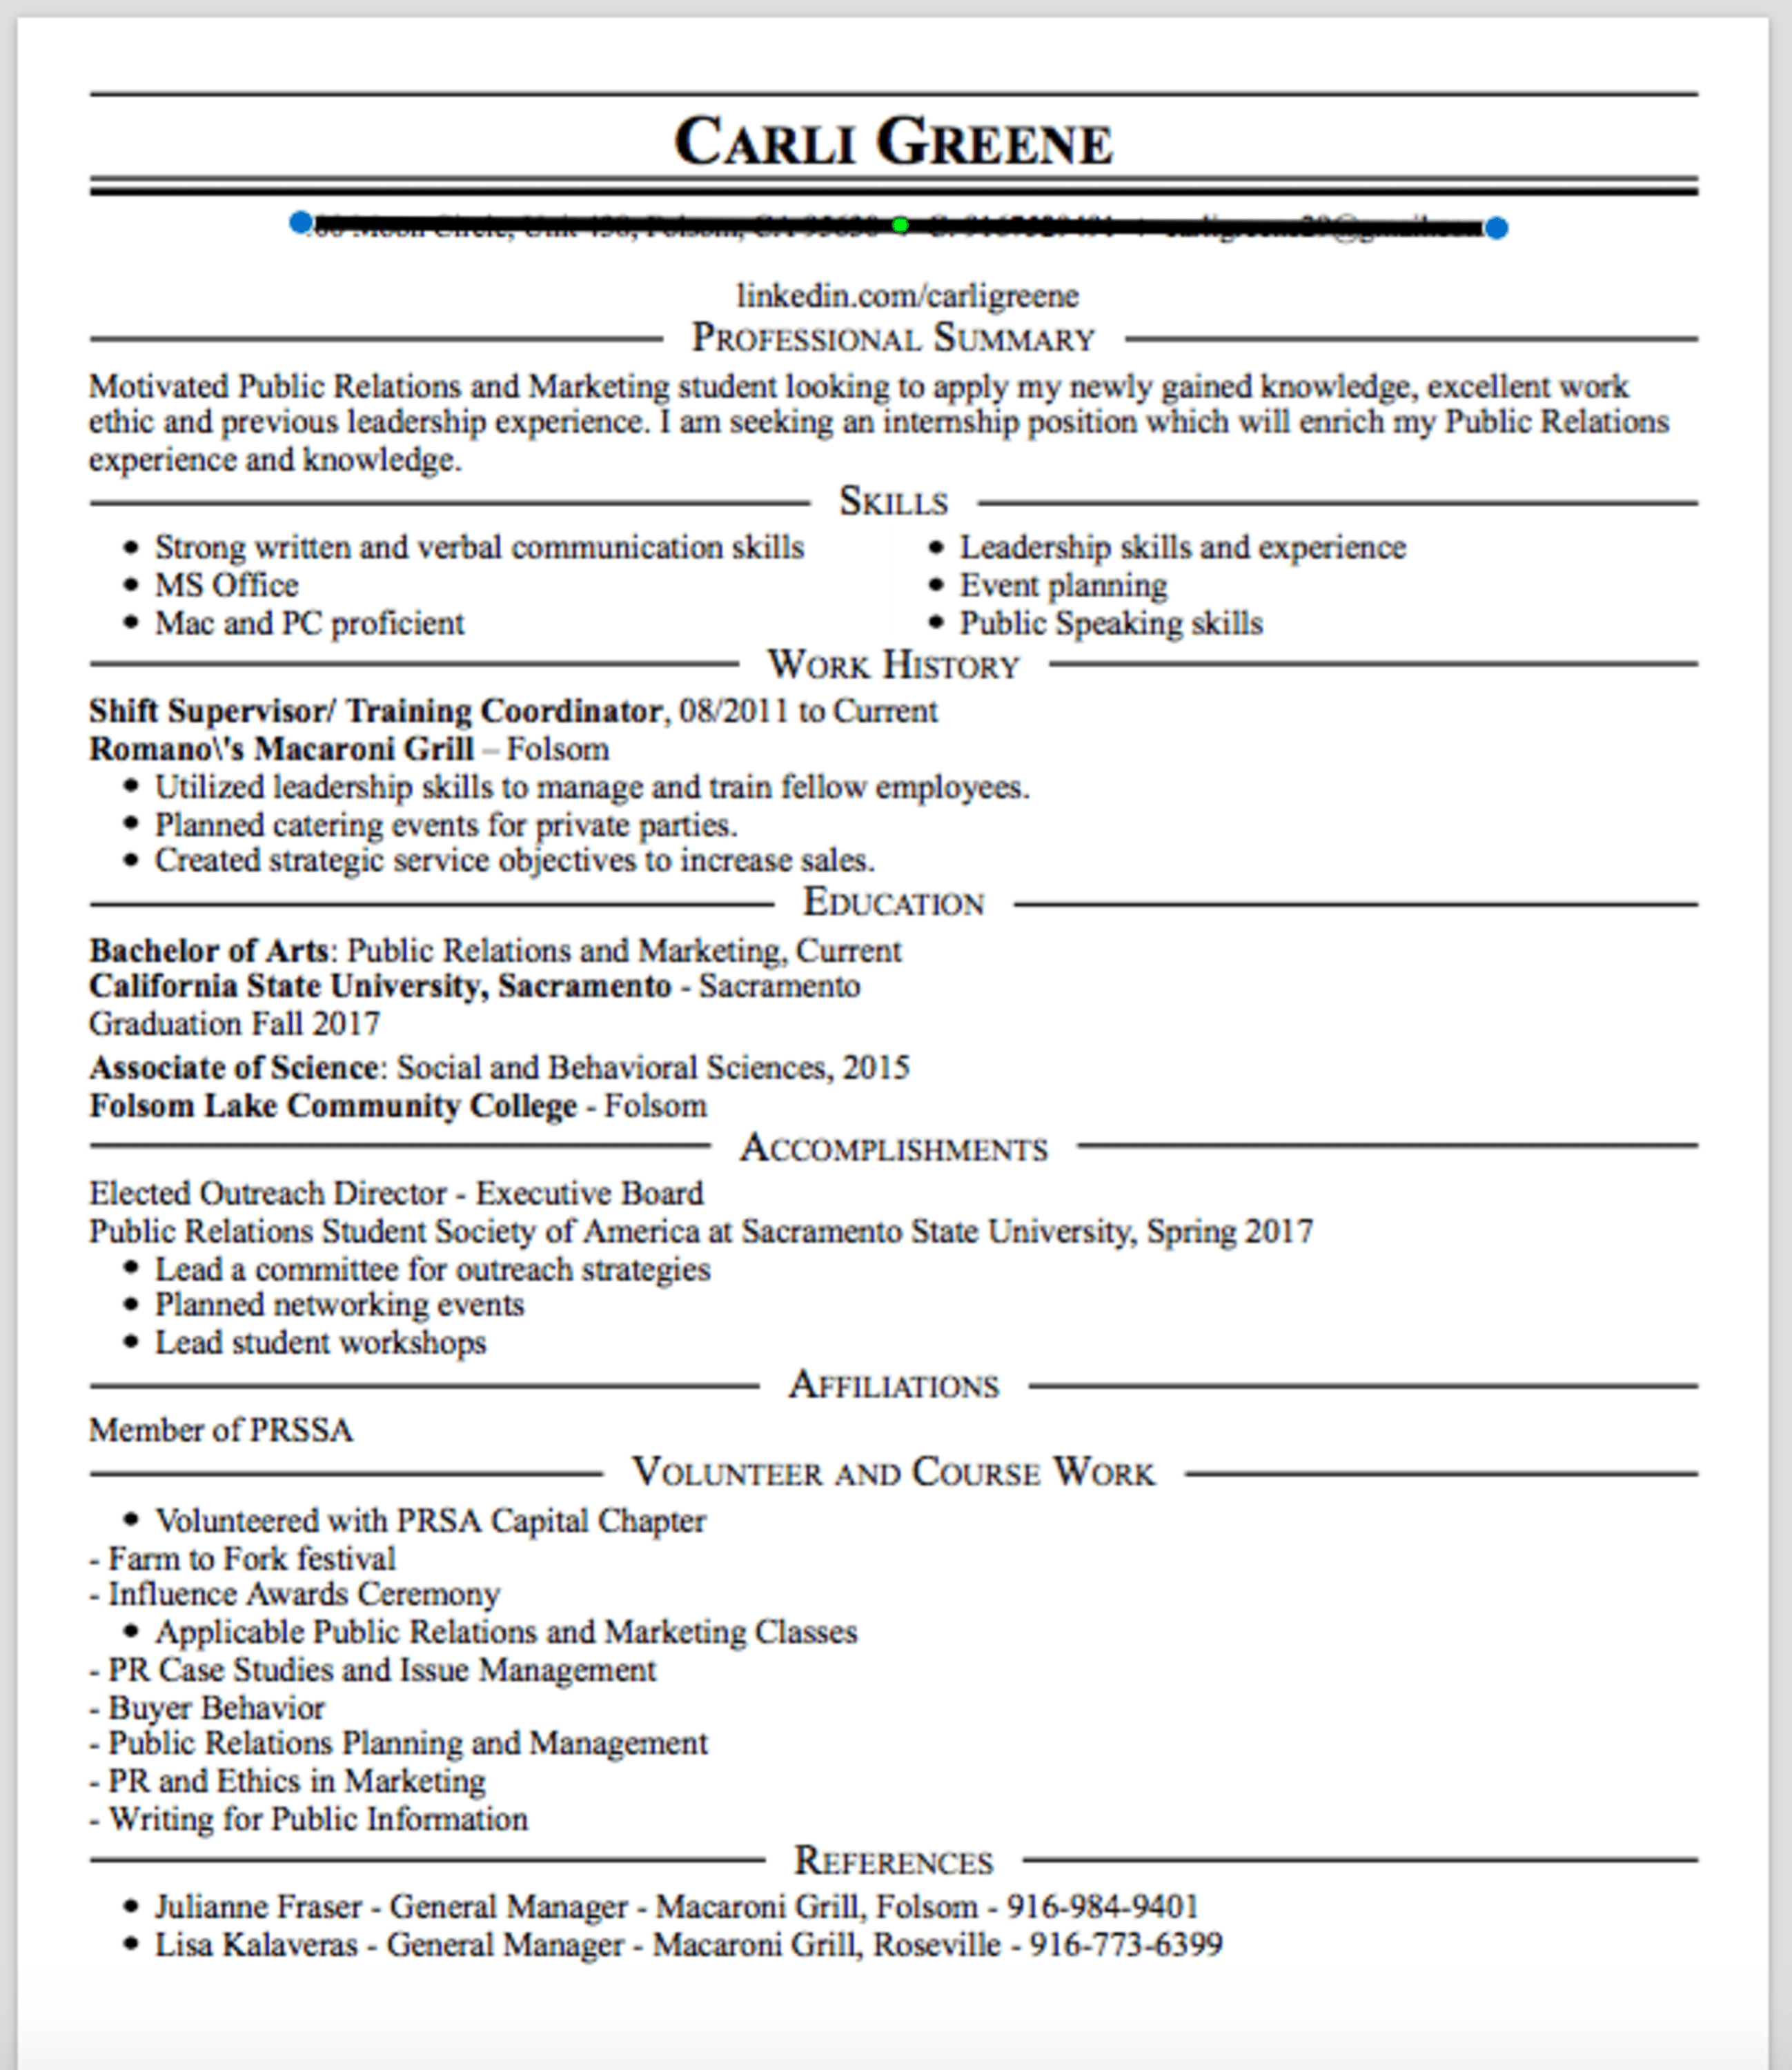 i am applying for an internship for the first time and this is my first try at putting together a resume am i missing anything should i change anything